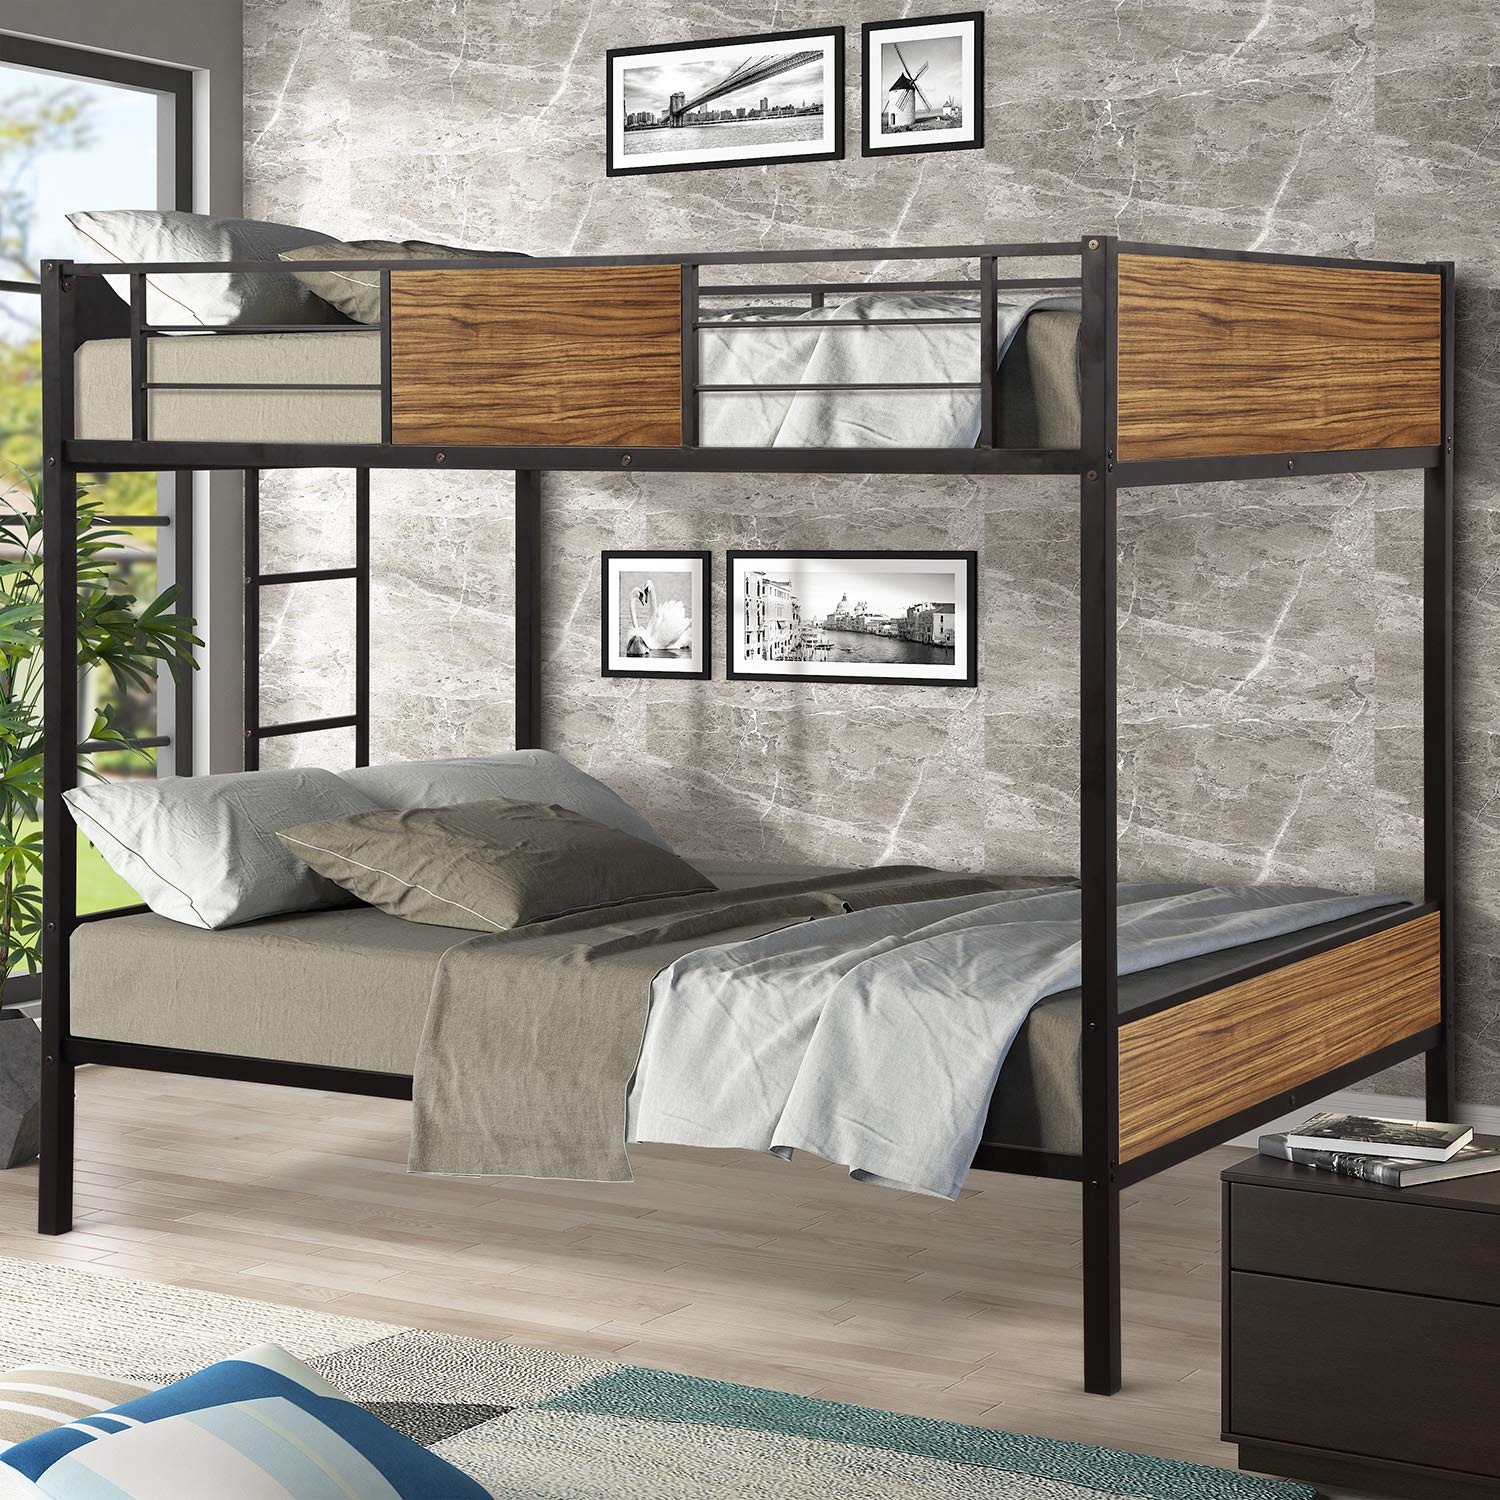 Full Over Full Metal Bunk Bed with Safety Rail, WeYoung Modern Style Full-Over-Full Bunkbed Frame Steel Built-in Ladder for Bedroom